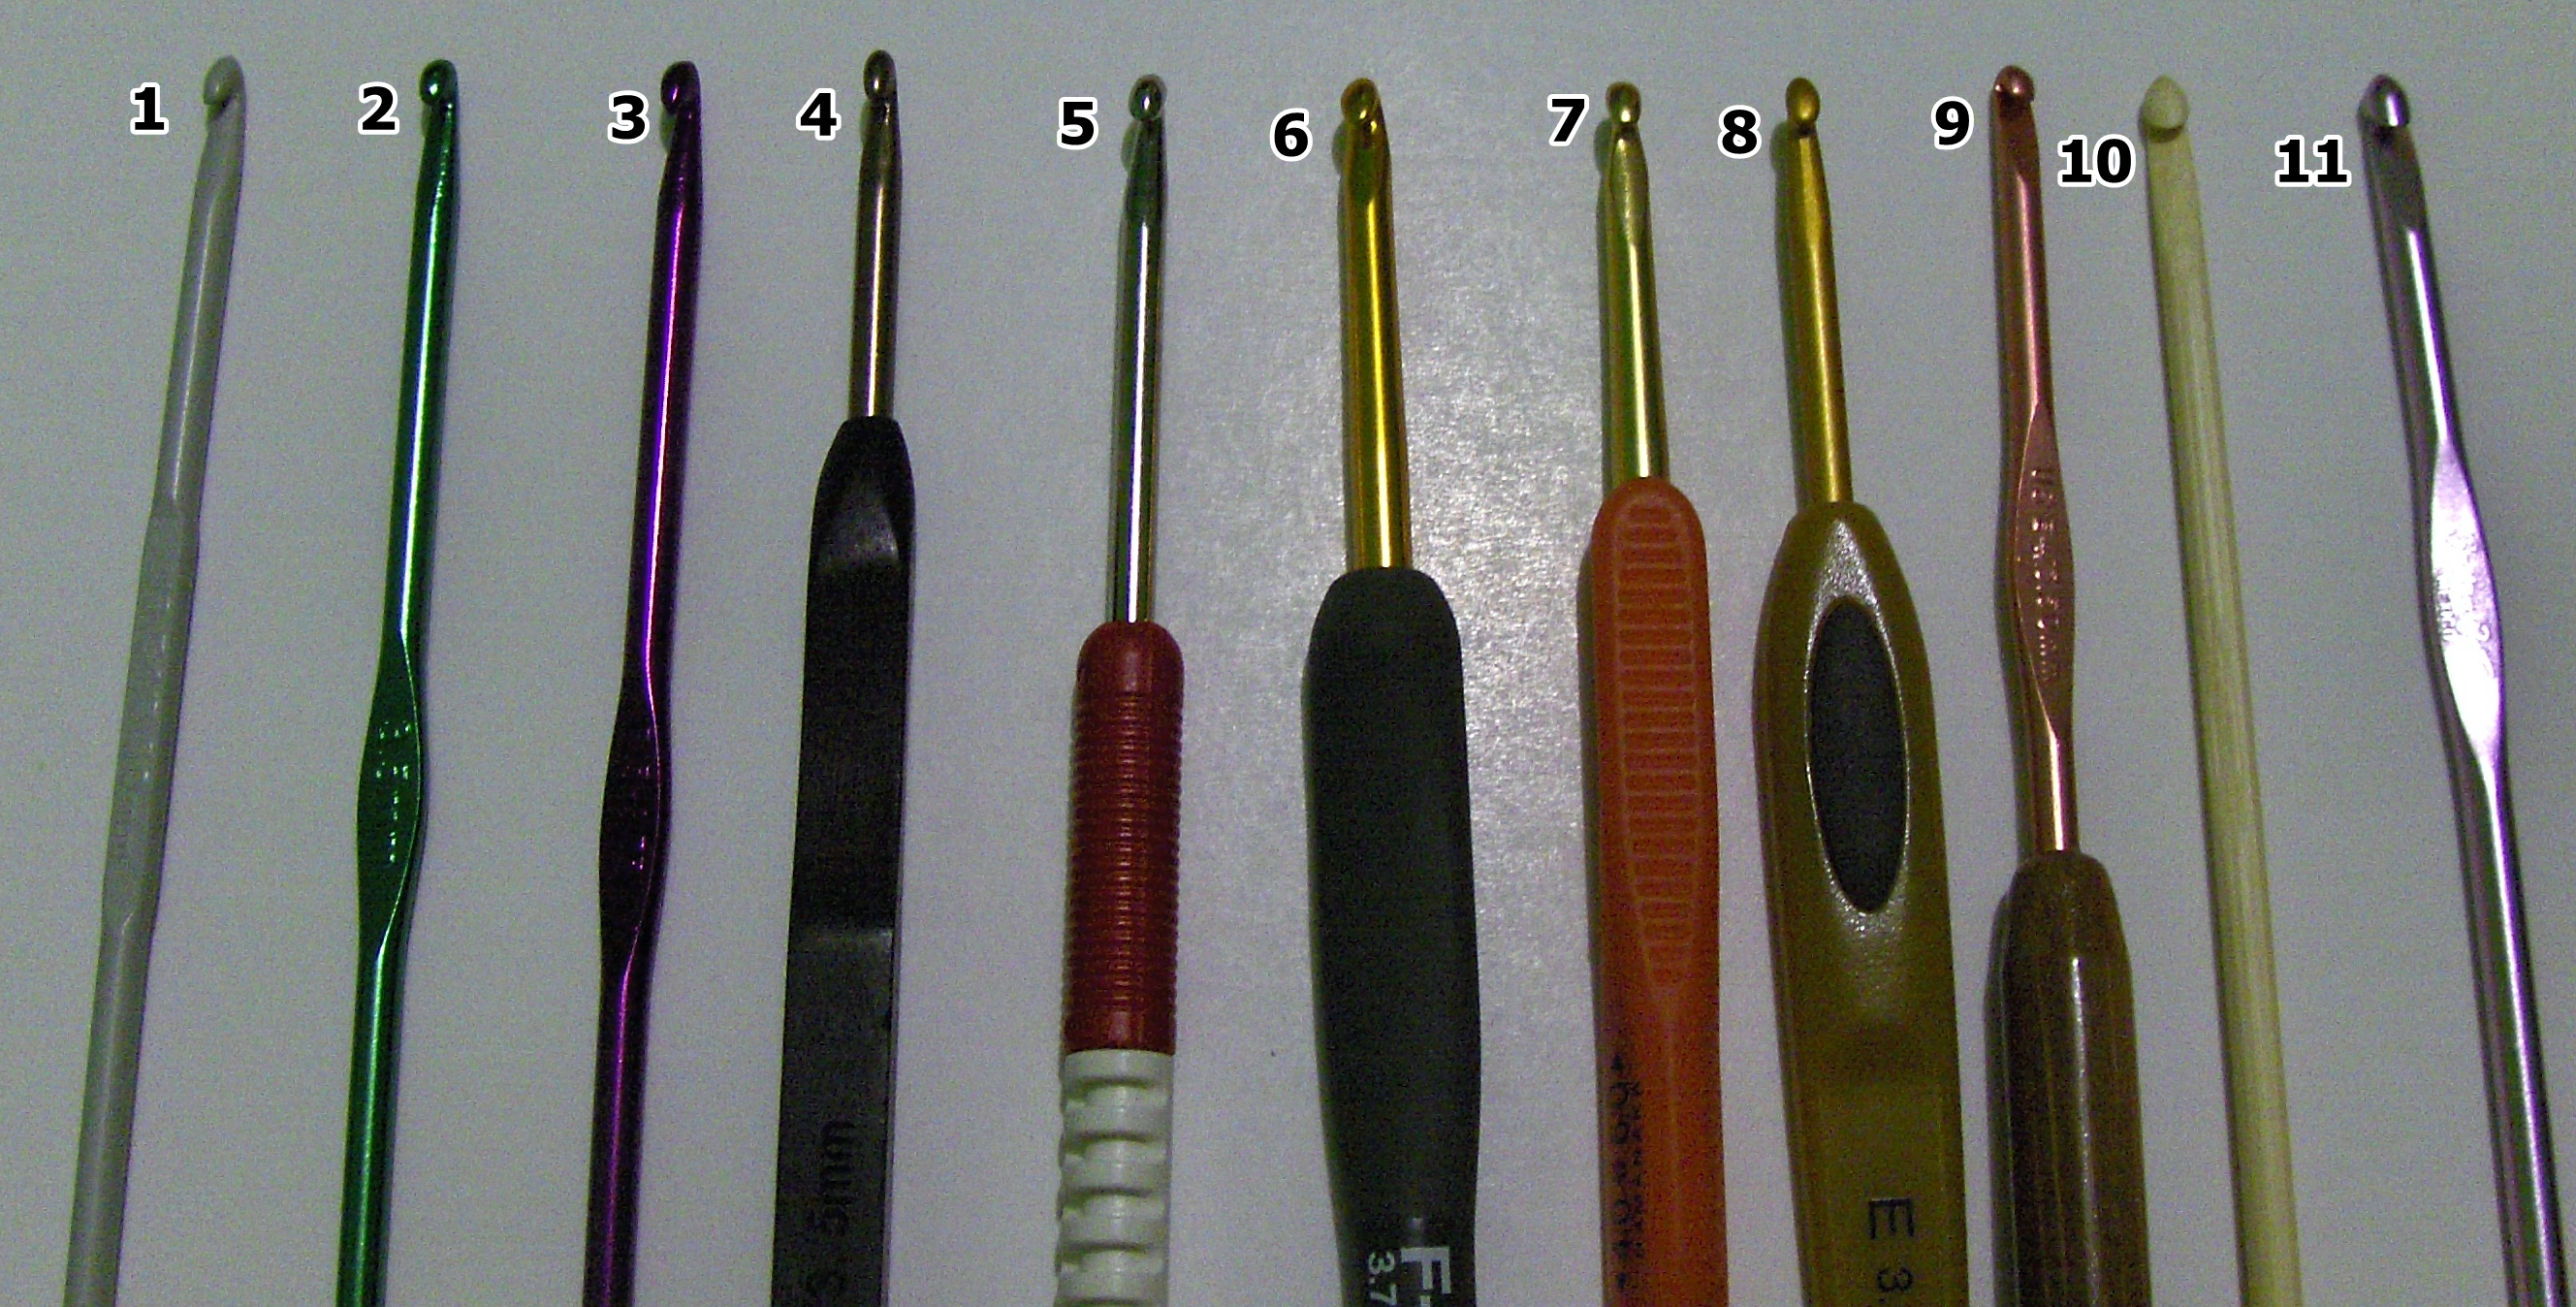 Crochet Hook Png Crochet hooks - front view